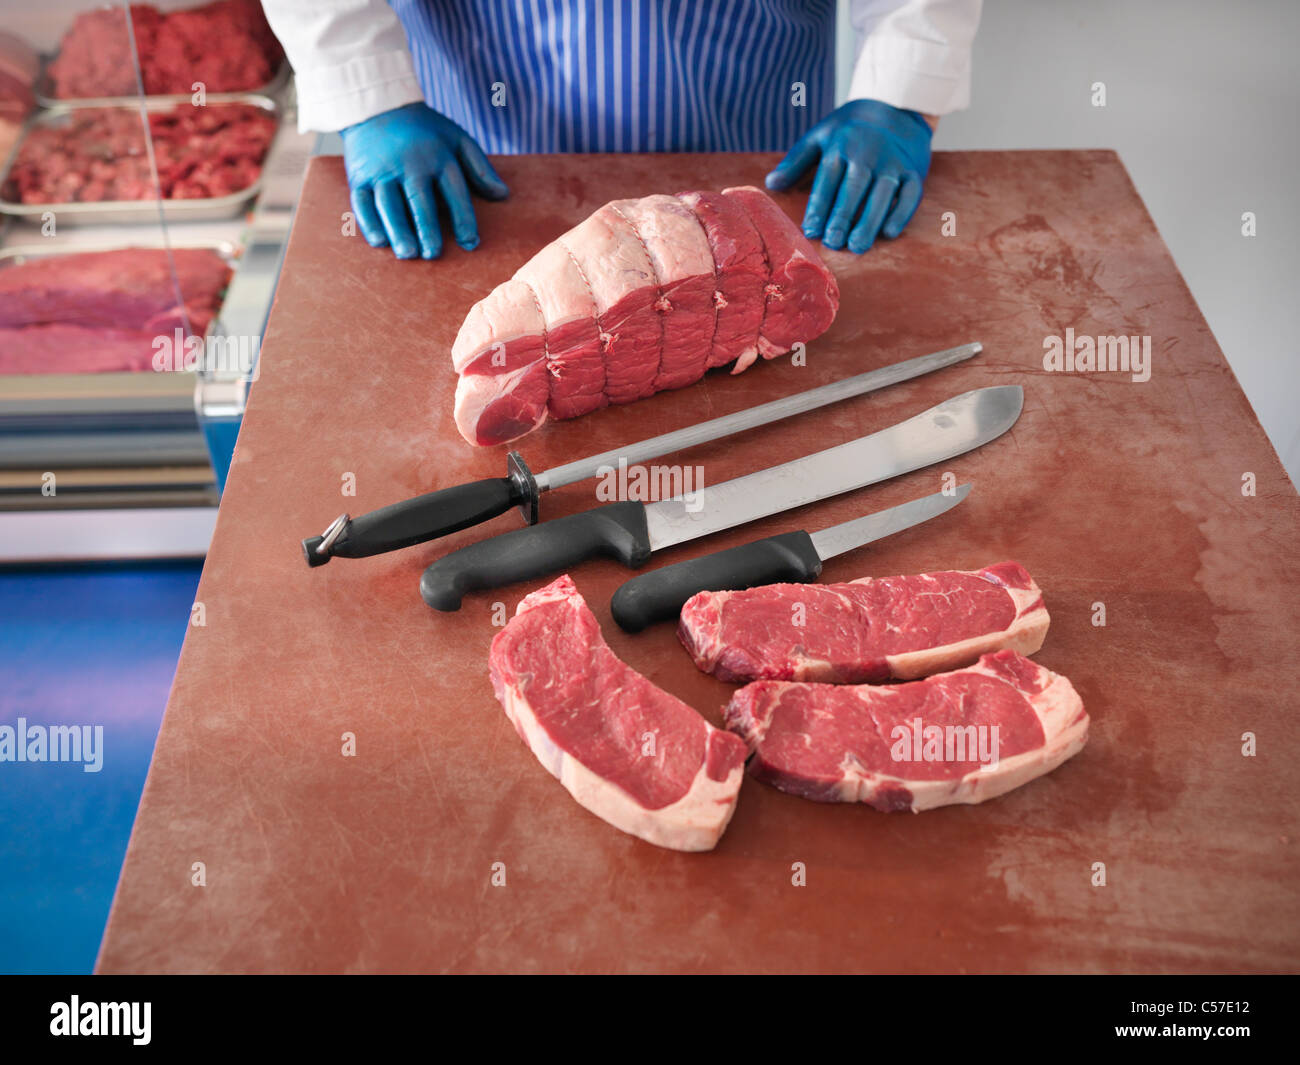 Butcher with knives and cuts of pork - Stock Image